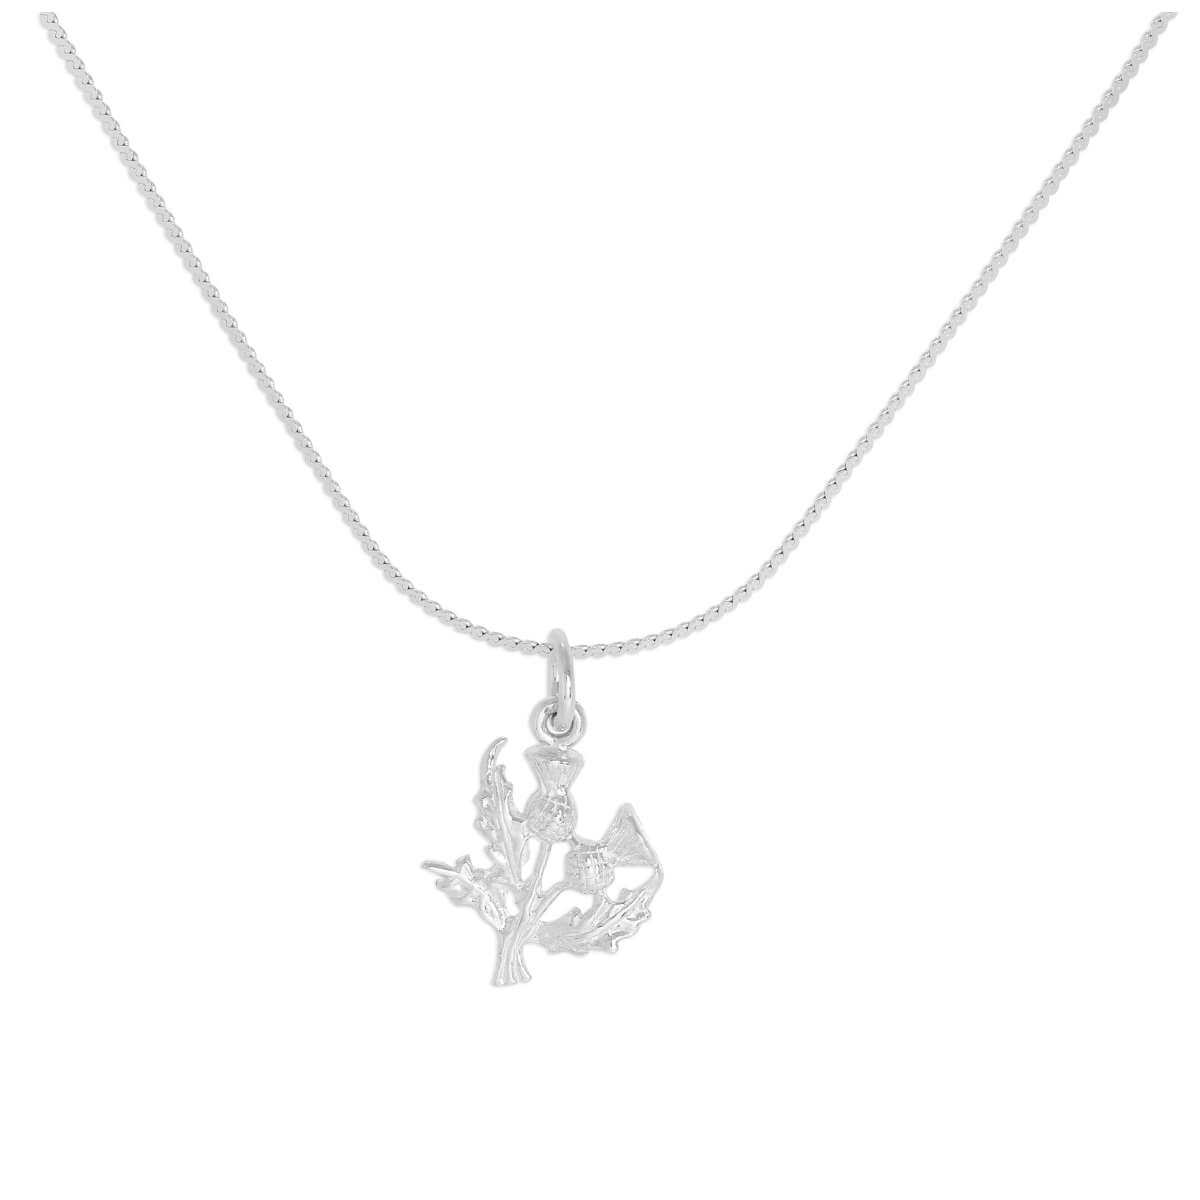 Sterling Silver Double Thistles Pendant Necklace 16 - 32 Inches